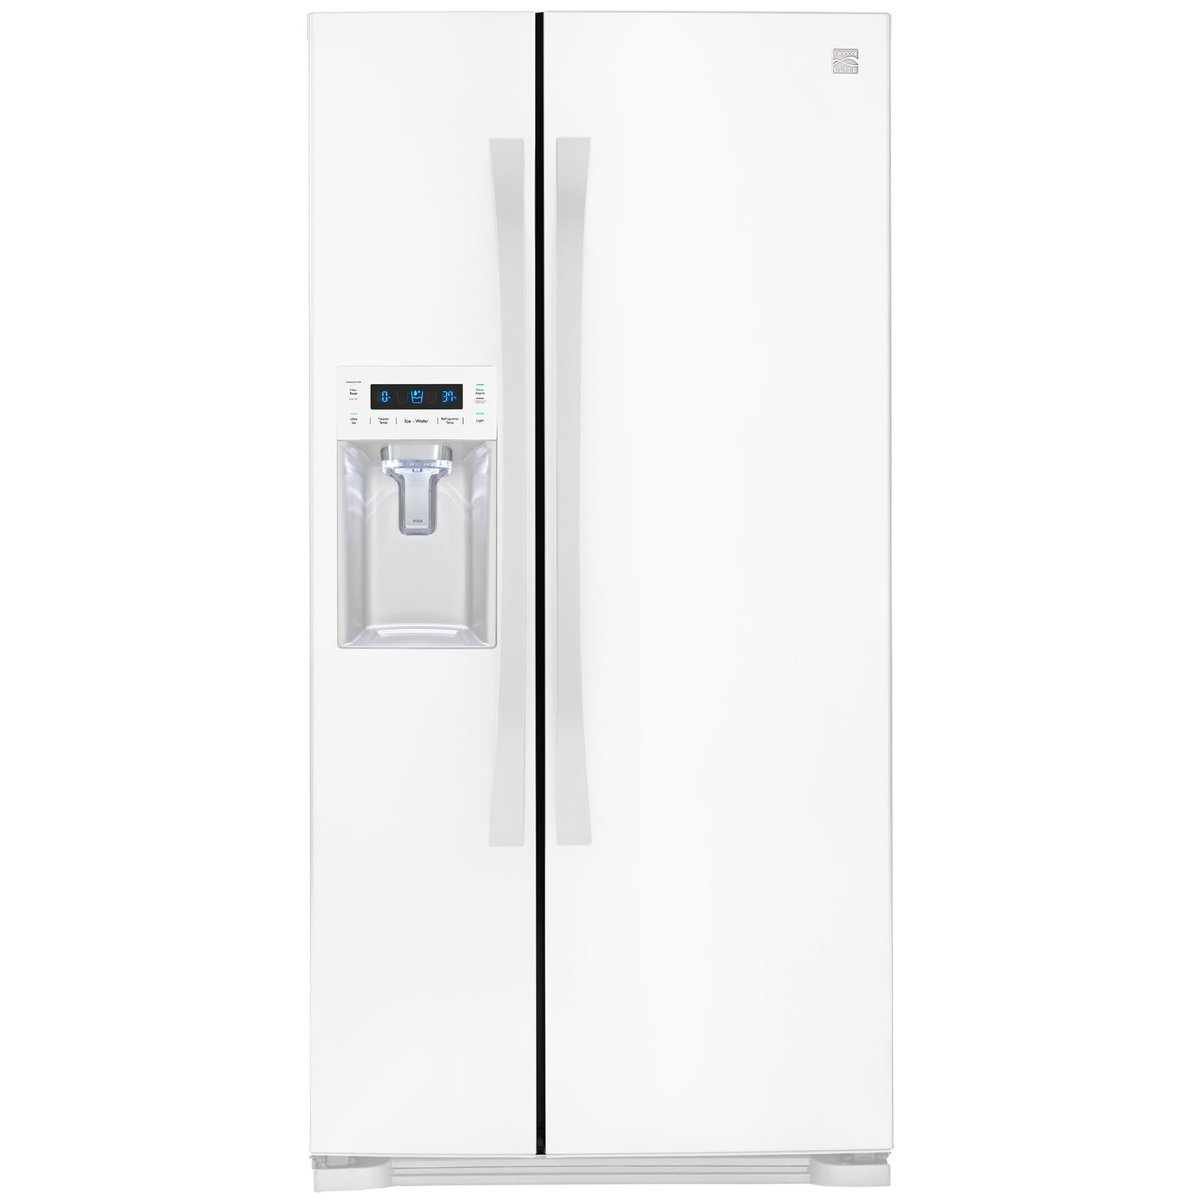 Kenmore 51752 21.4 ct. ft. Side-by-Side Refrigerator in White, includes delivery and hookup Sears Home Services - water filters